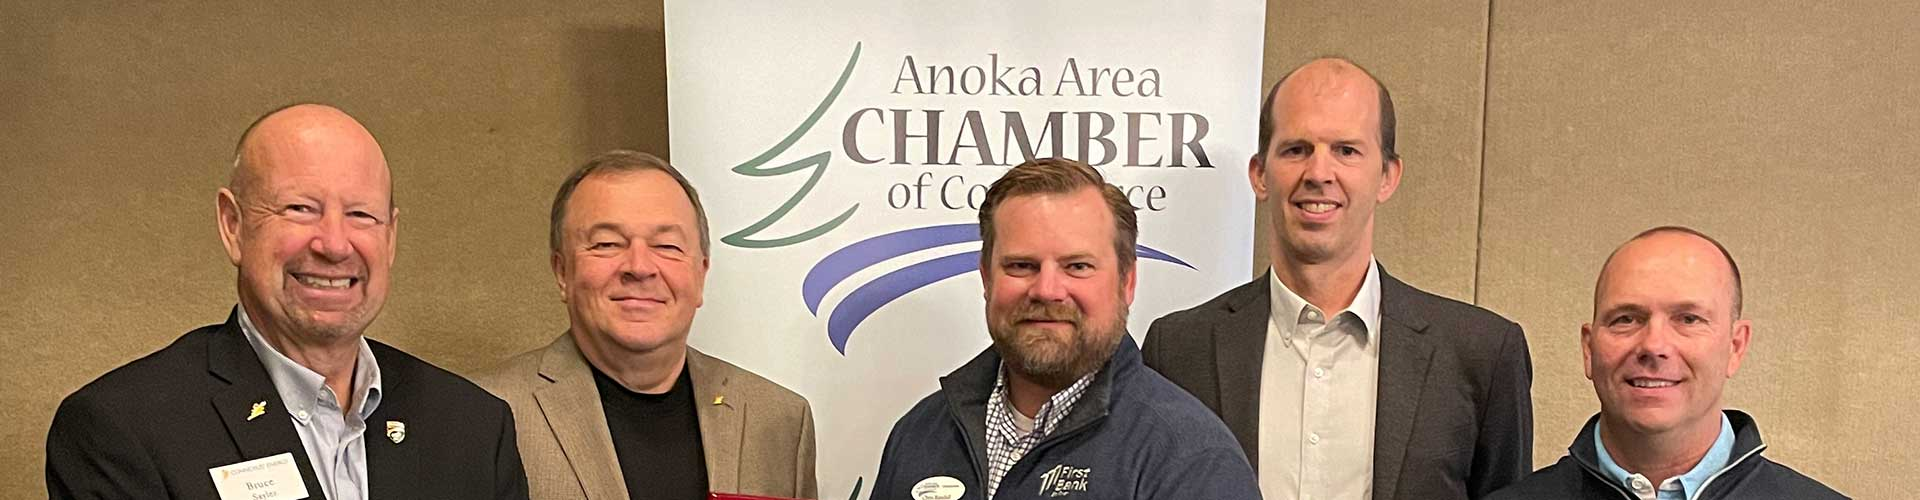 Connexus Energy Named Business of the Year by Anoka Area Chamber of Commerce